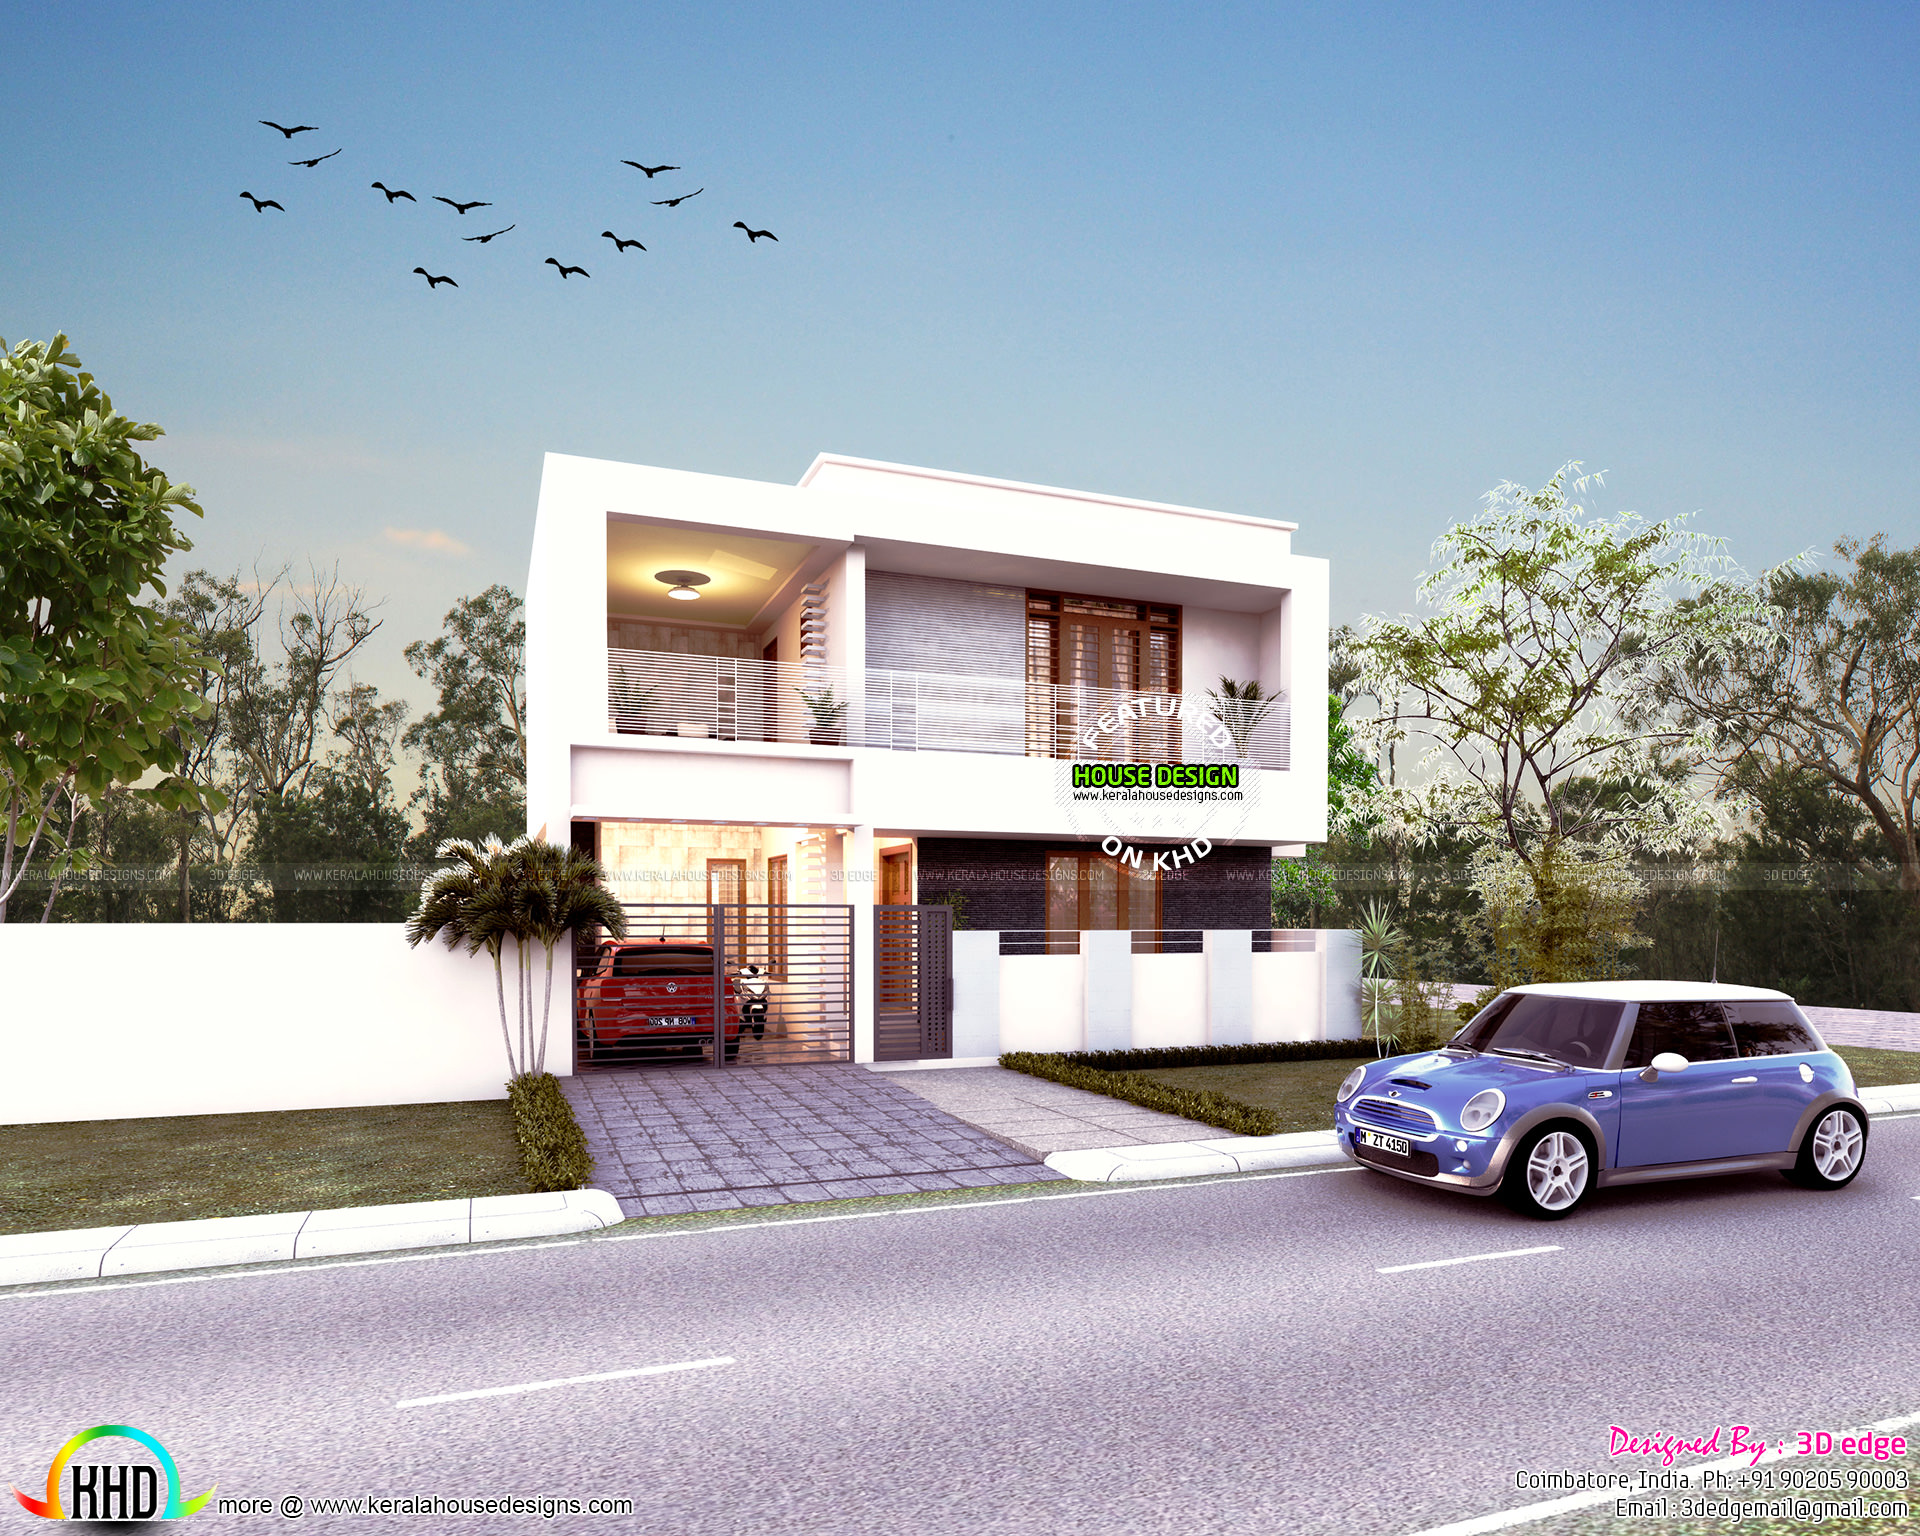 See floor plans read more please follow kerala home design - Design Style Contemporary See Blueprint Floor Plan Facility Details Read More Please Follow Kerala Home Design